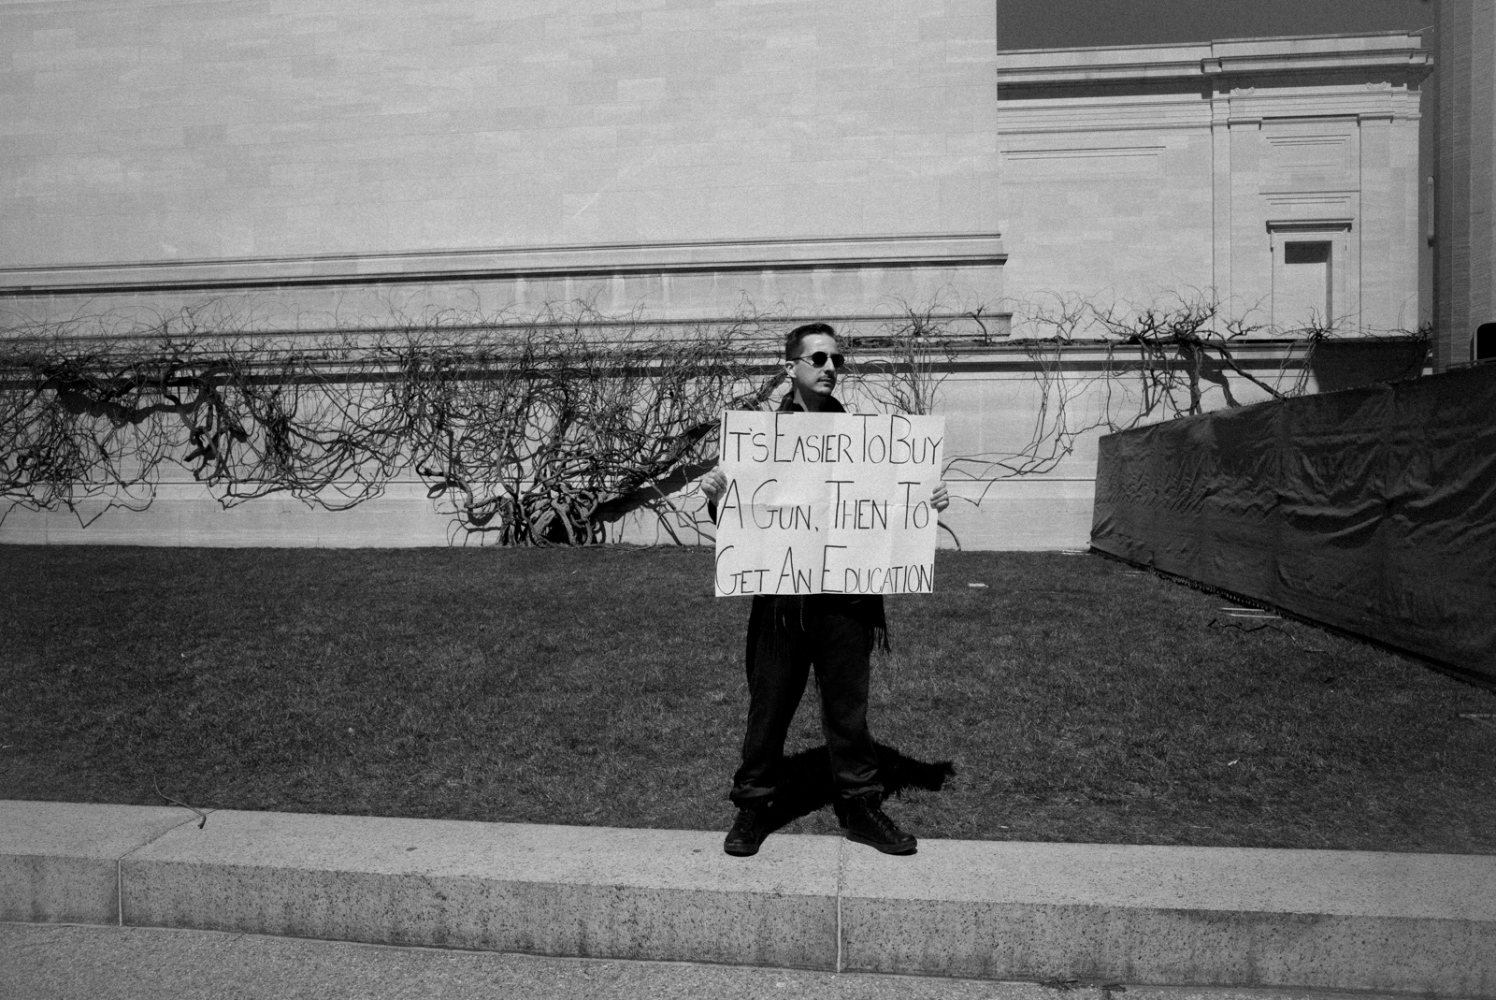 Art and Documentary Photography - Loading __donnaferrato_march4ourlives-5.jpg